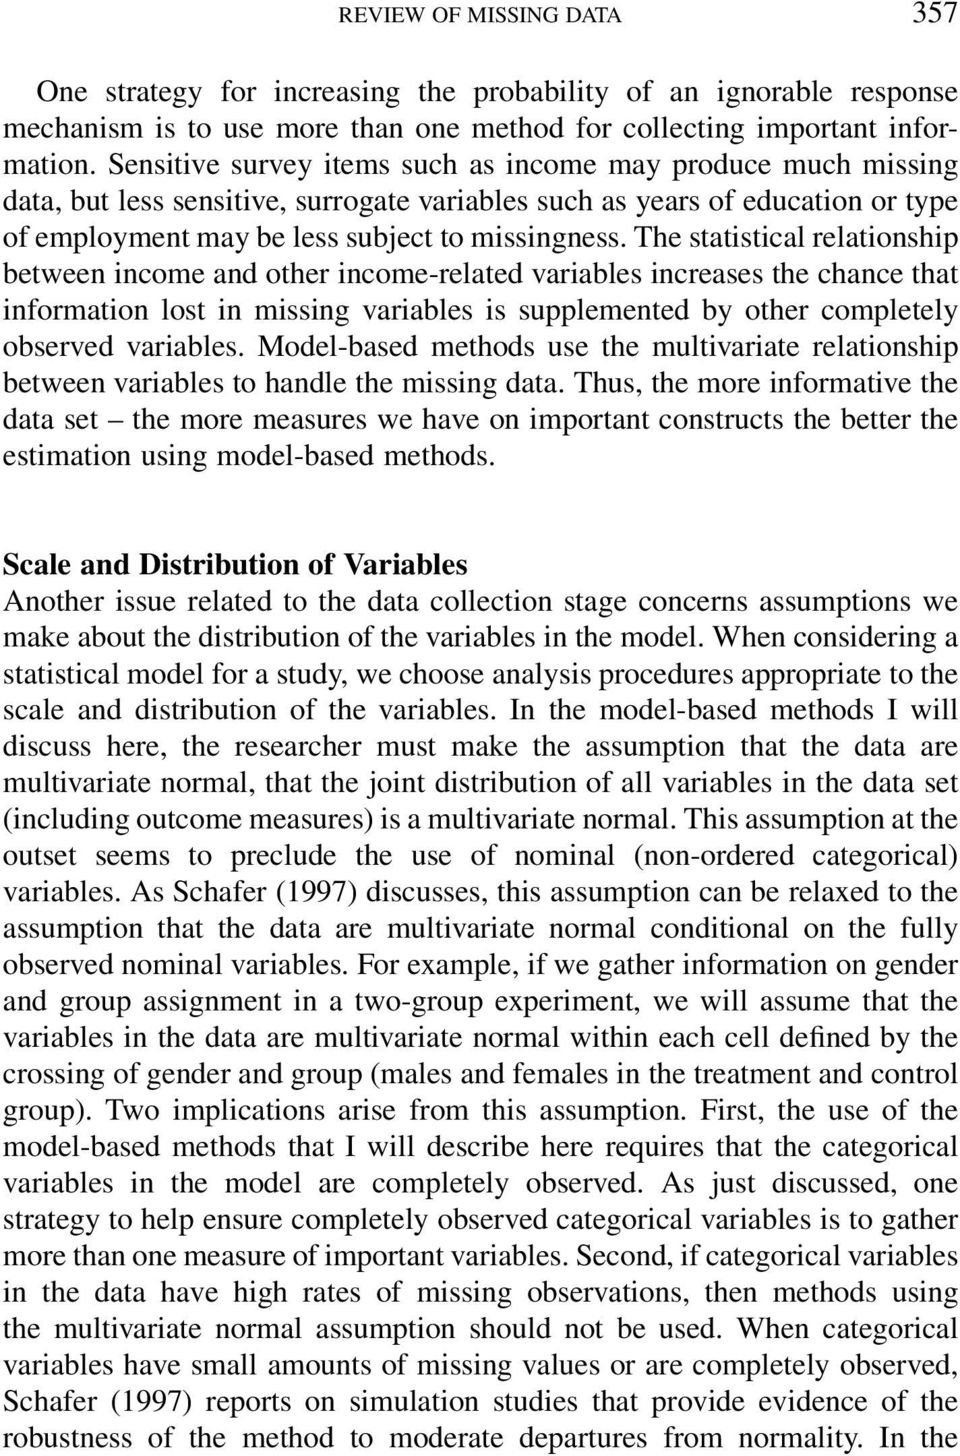 The statistical relationship between income and other income-related variables increases the chance that information lost in missing variables is supplemented by other completely observed variables.